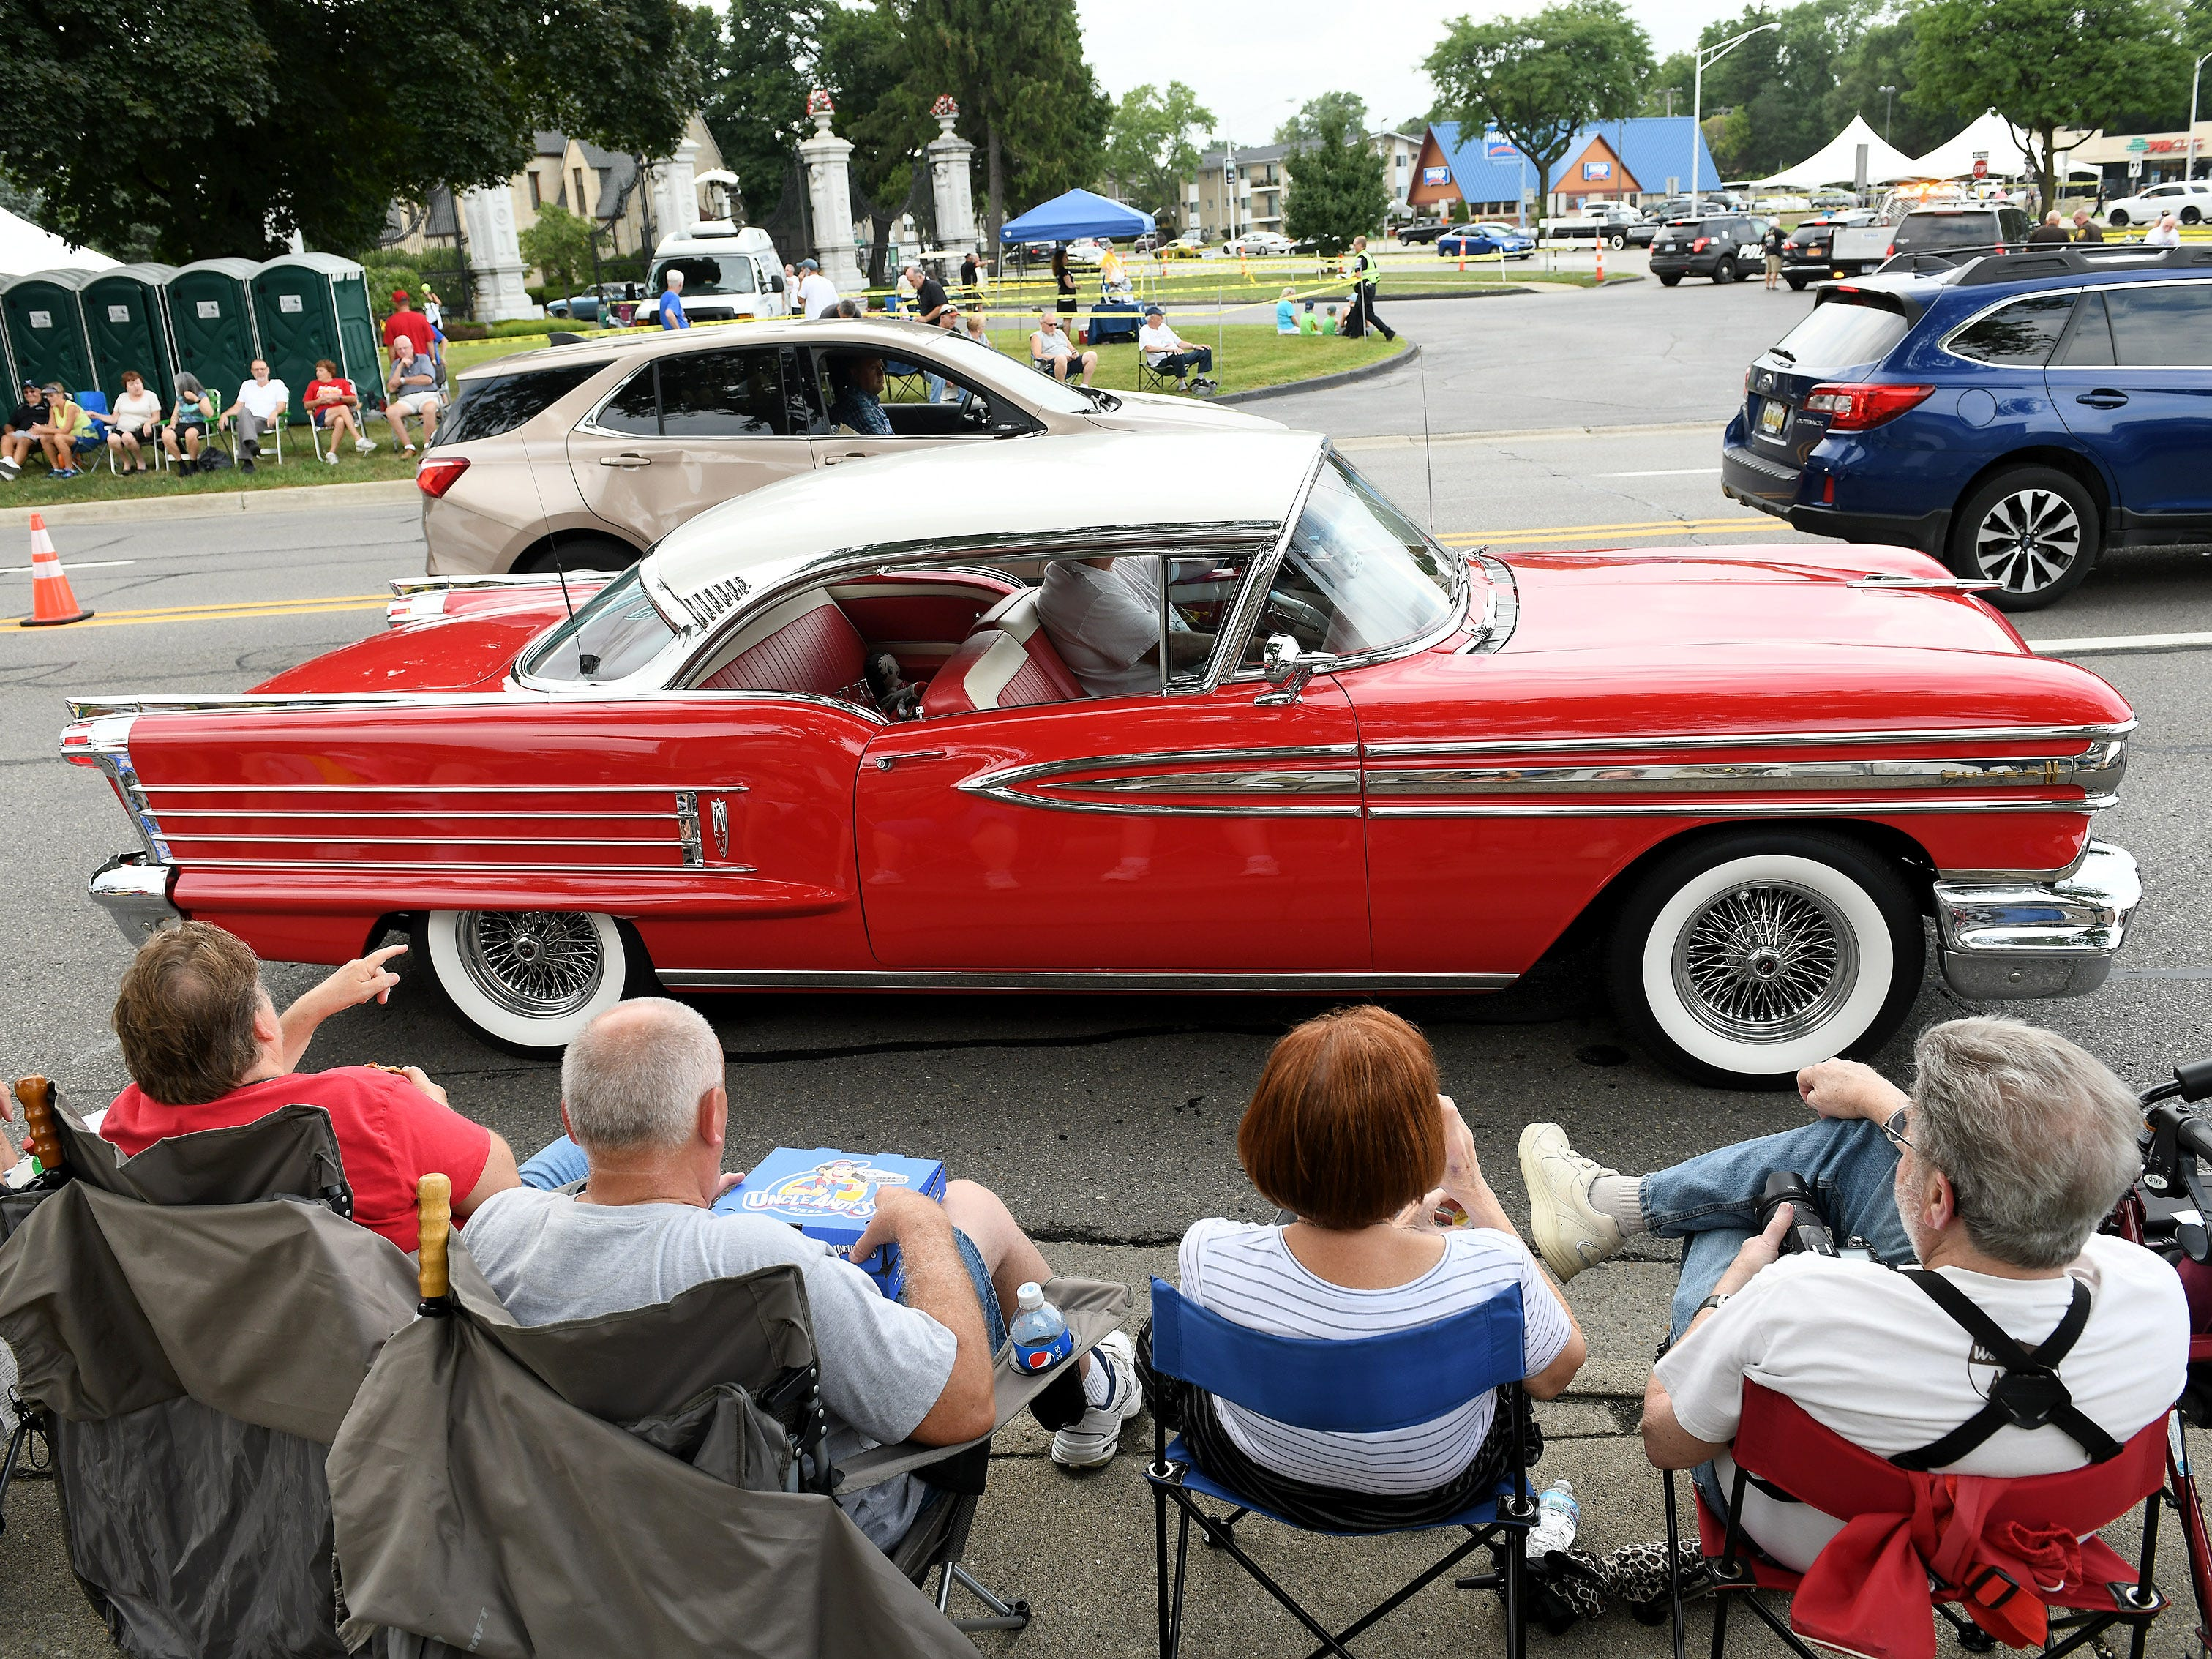 Spectators at the corner of 12 Mile and Woodward get a close-up view of this classic Oldsmobile.